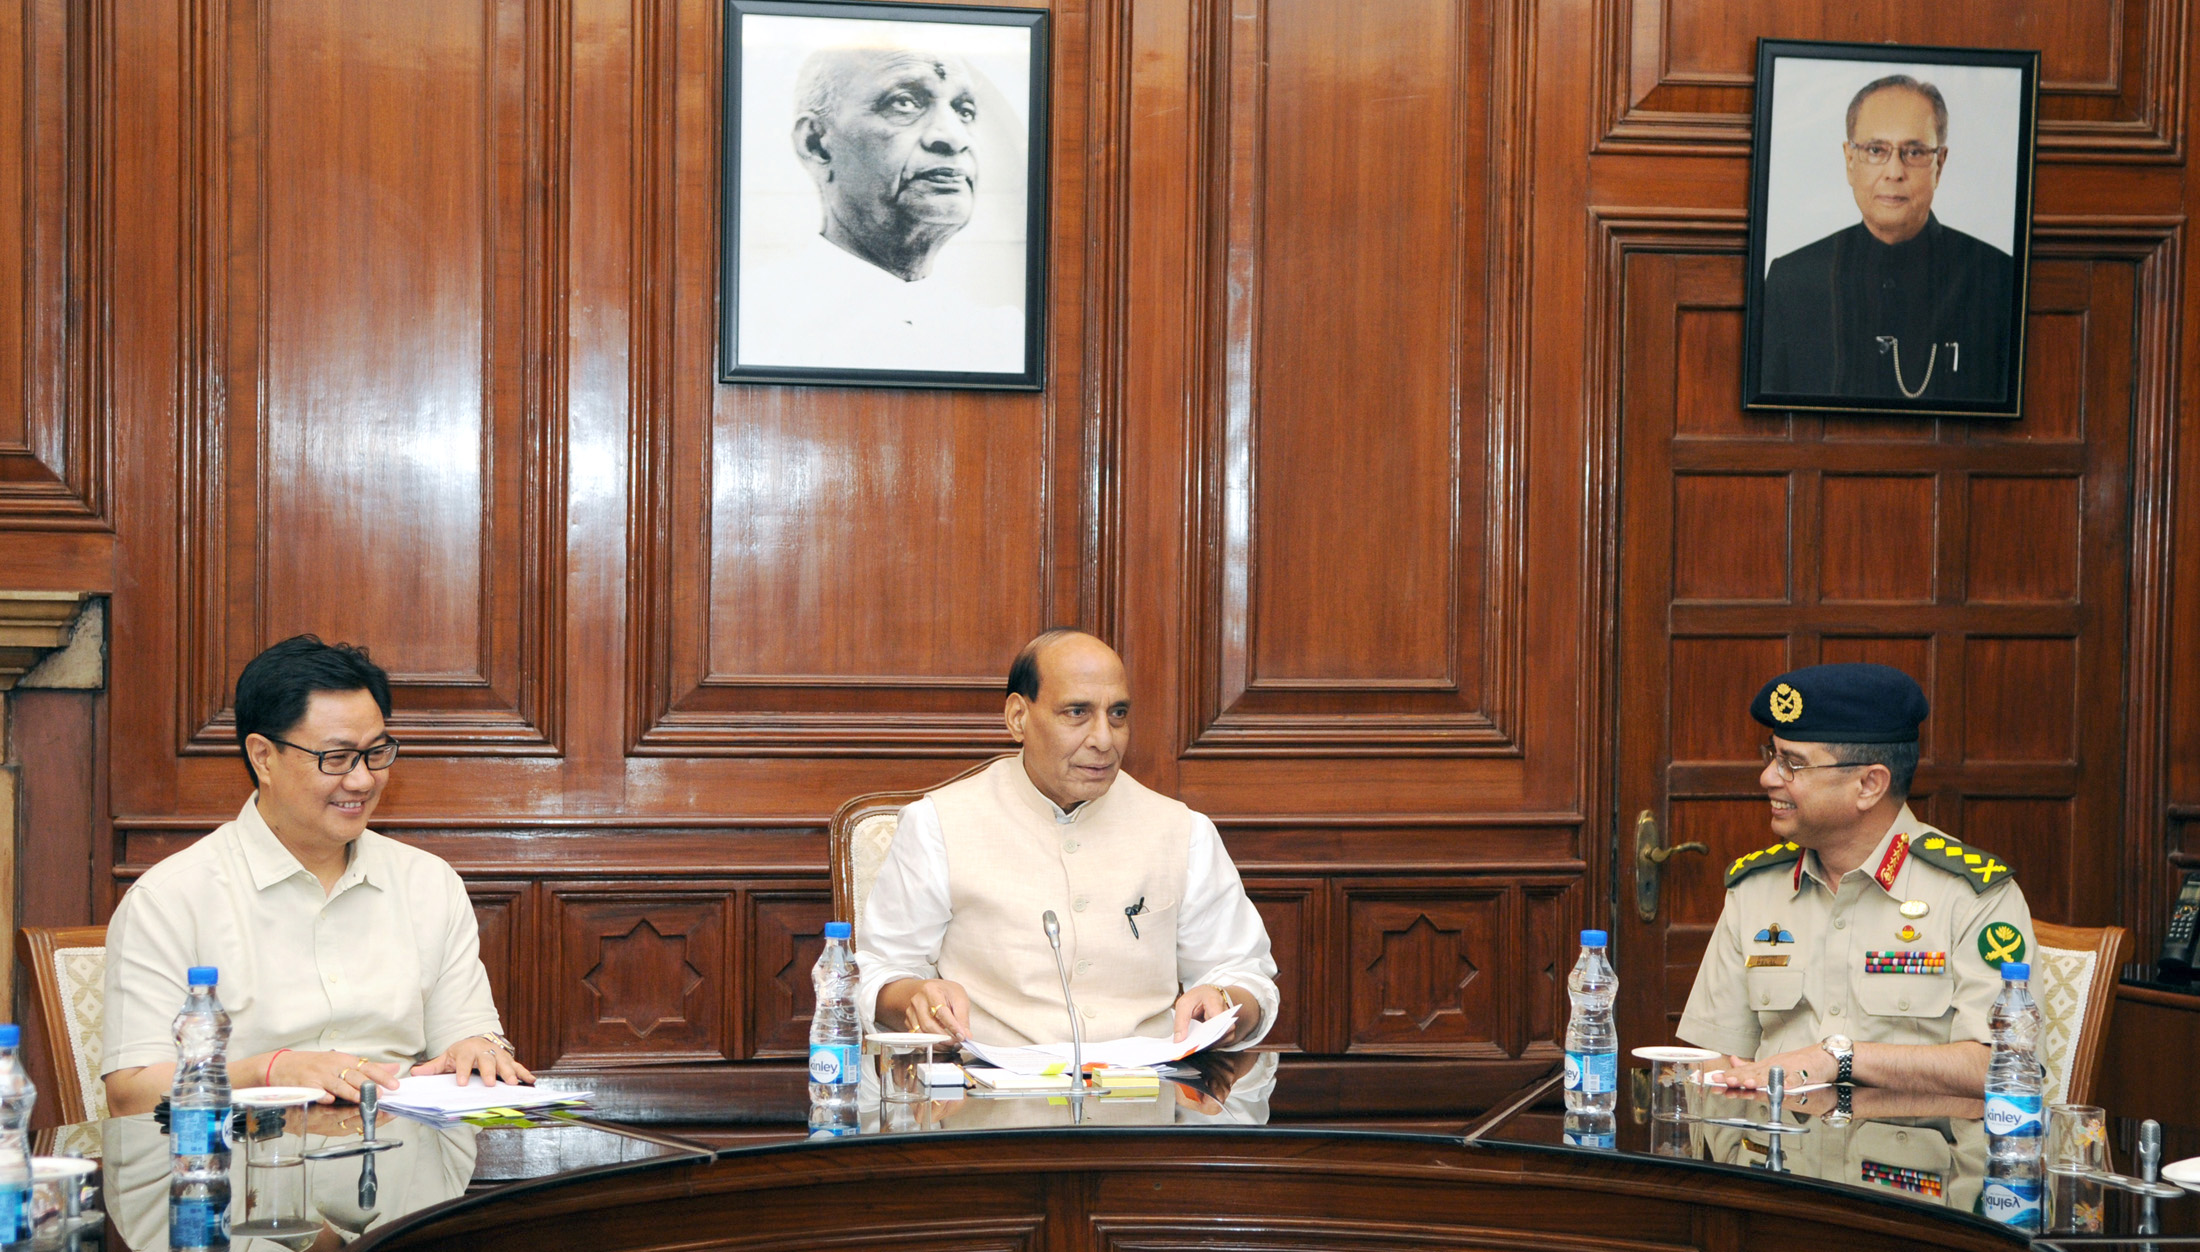 The Bangladesh Chief of Army Staff, General Abu Belal Muhammad Shafiul Huq calling on the Union Home Minister, Shri Rajnath Singh, in New Delhi on September 09, 2015.The Minister of State for Home Affairs, Shri Kiren Rijiju is also seen.